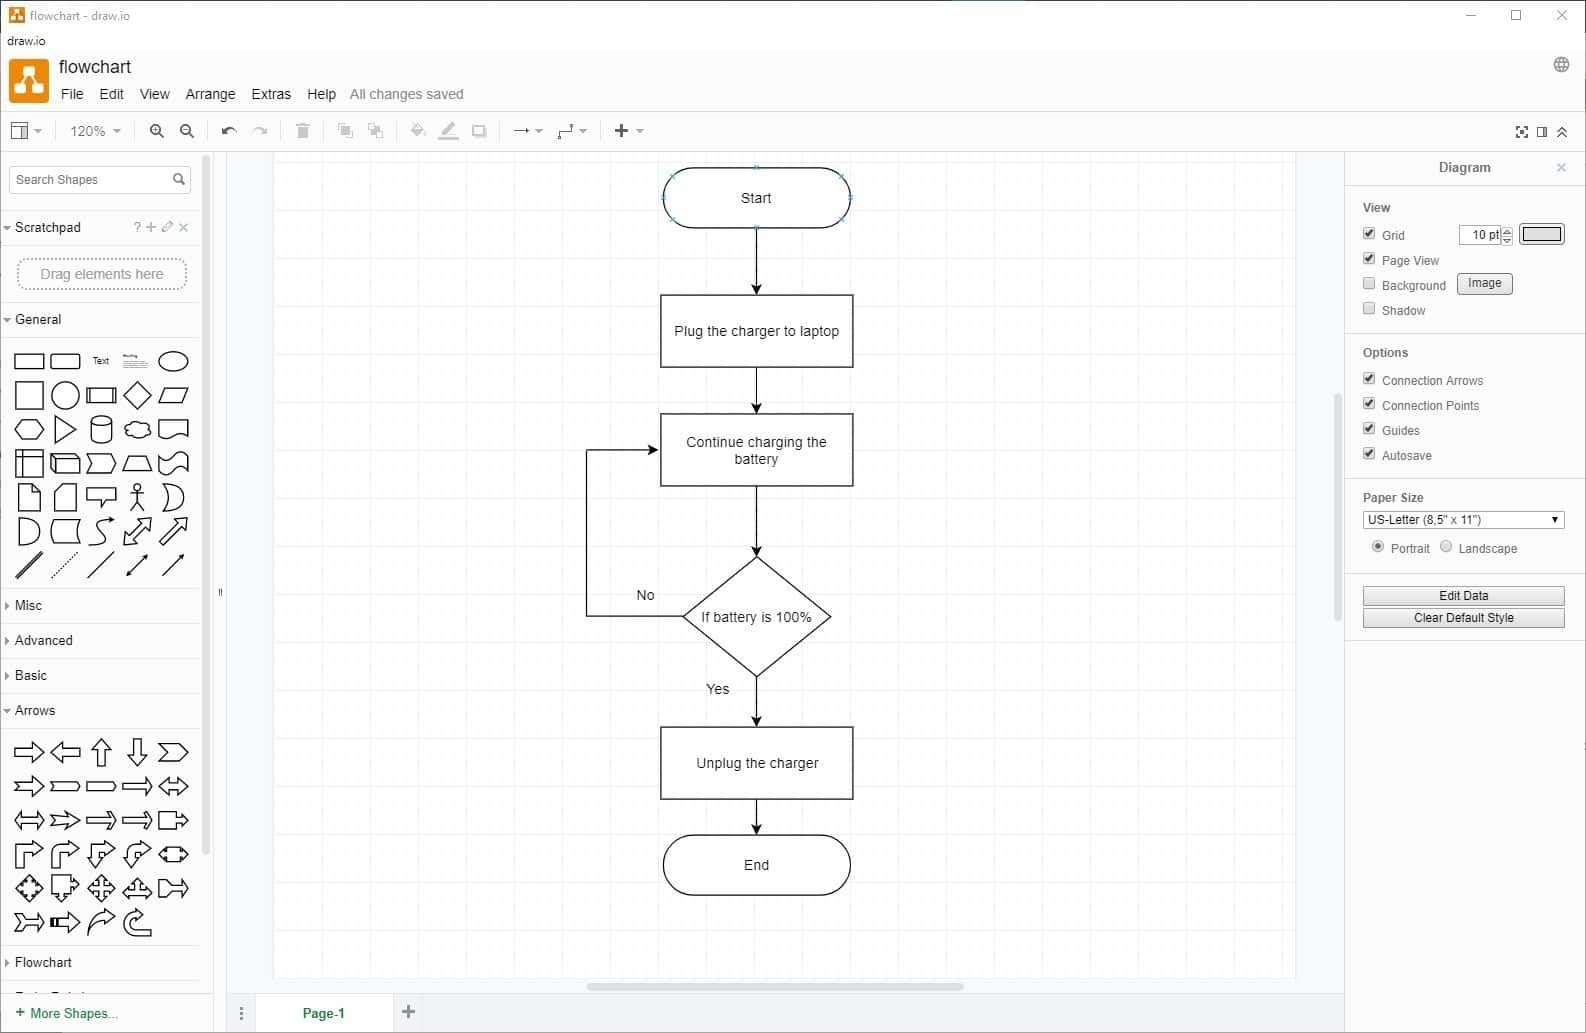 Draw.io is a free Flowchart and diagram creation software